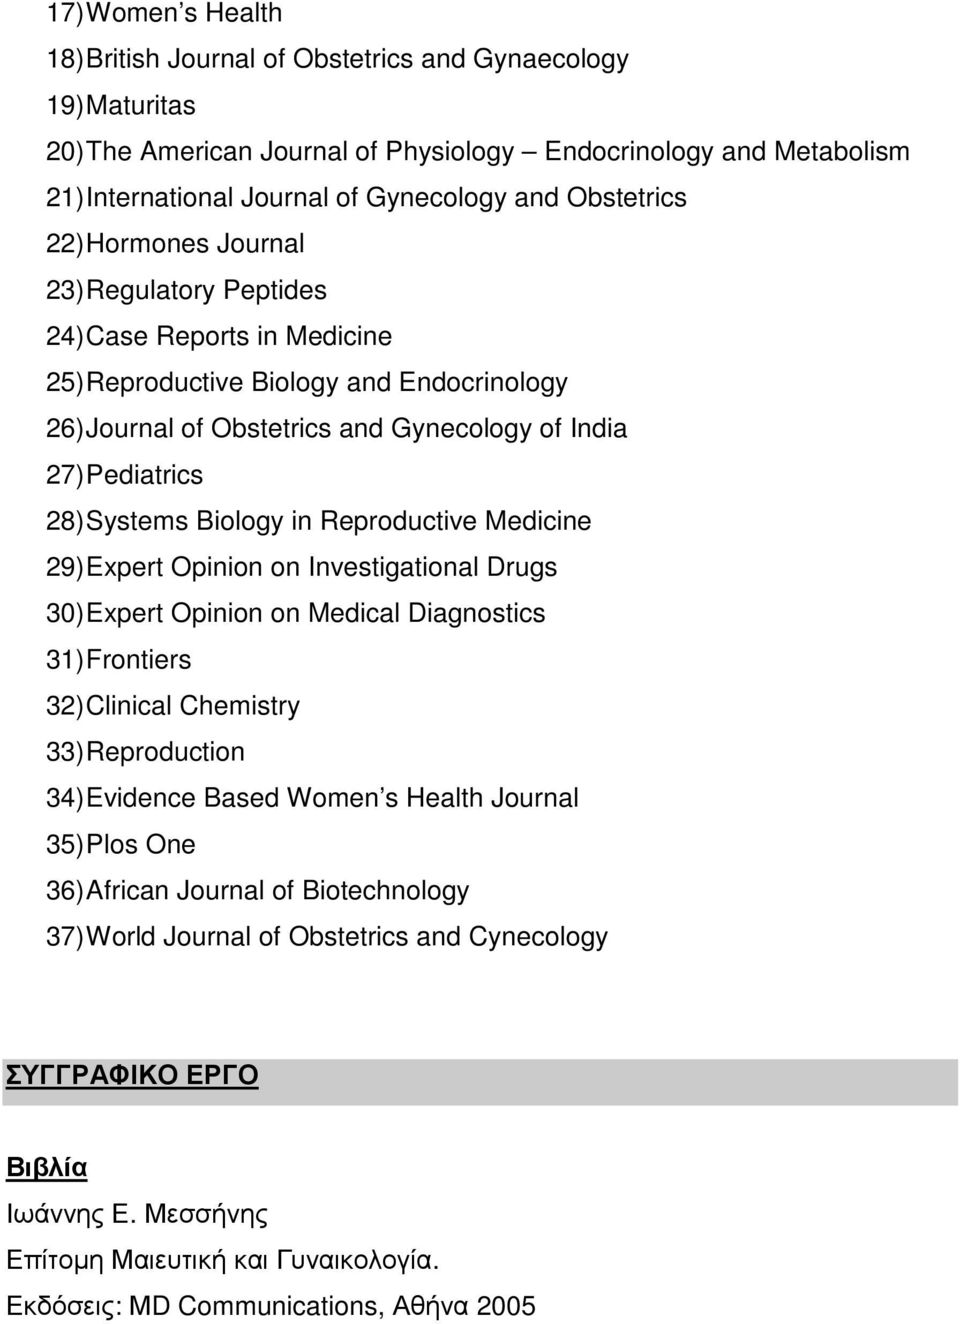 Systems Biology in Reproductive Medicine 29) Expert Opinion on Investigational Drugs 30) Expert Opinion on Medical Diagnostics 31) Frontiers 32) Clinical Chemistry 33) Reproduction 34) Evidence Based